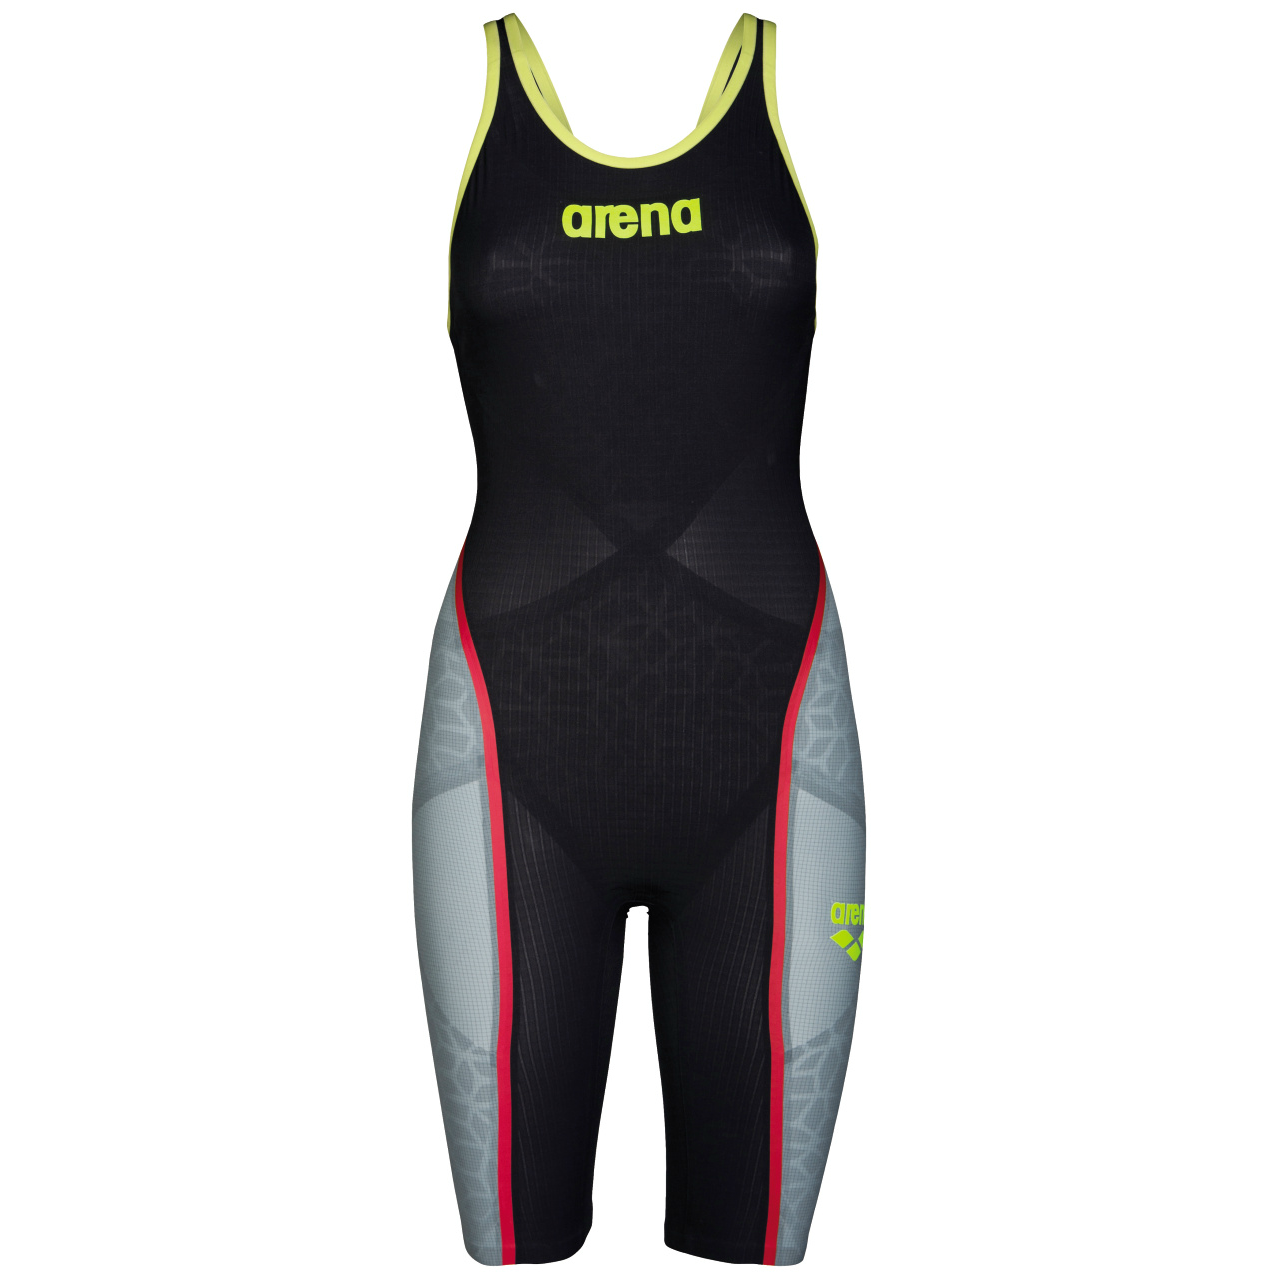 Arena carbon ultra dark grey